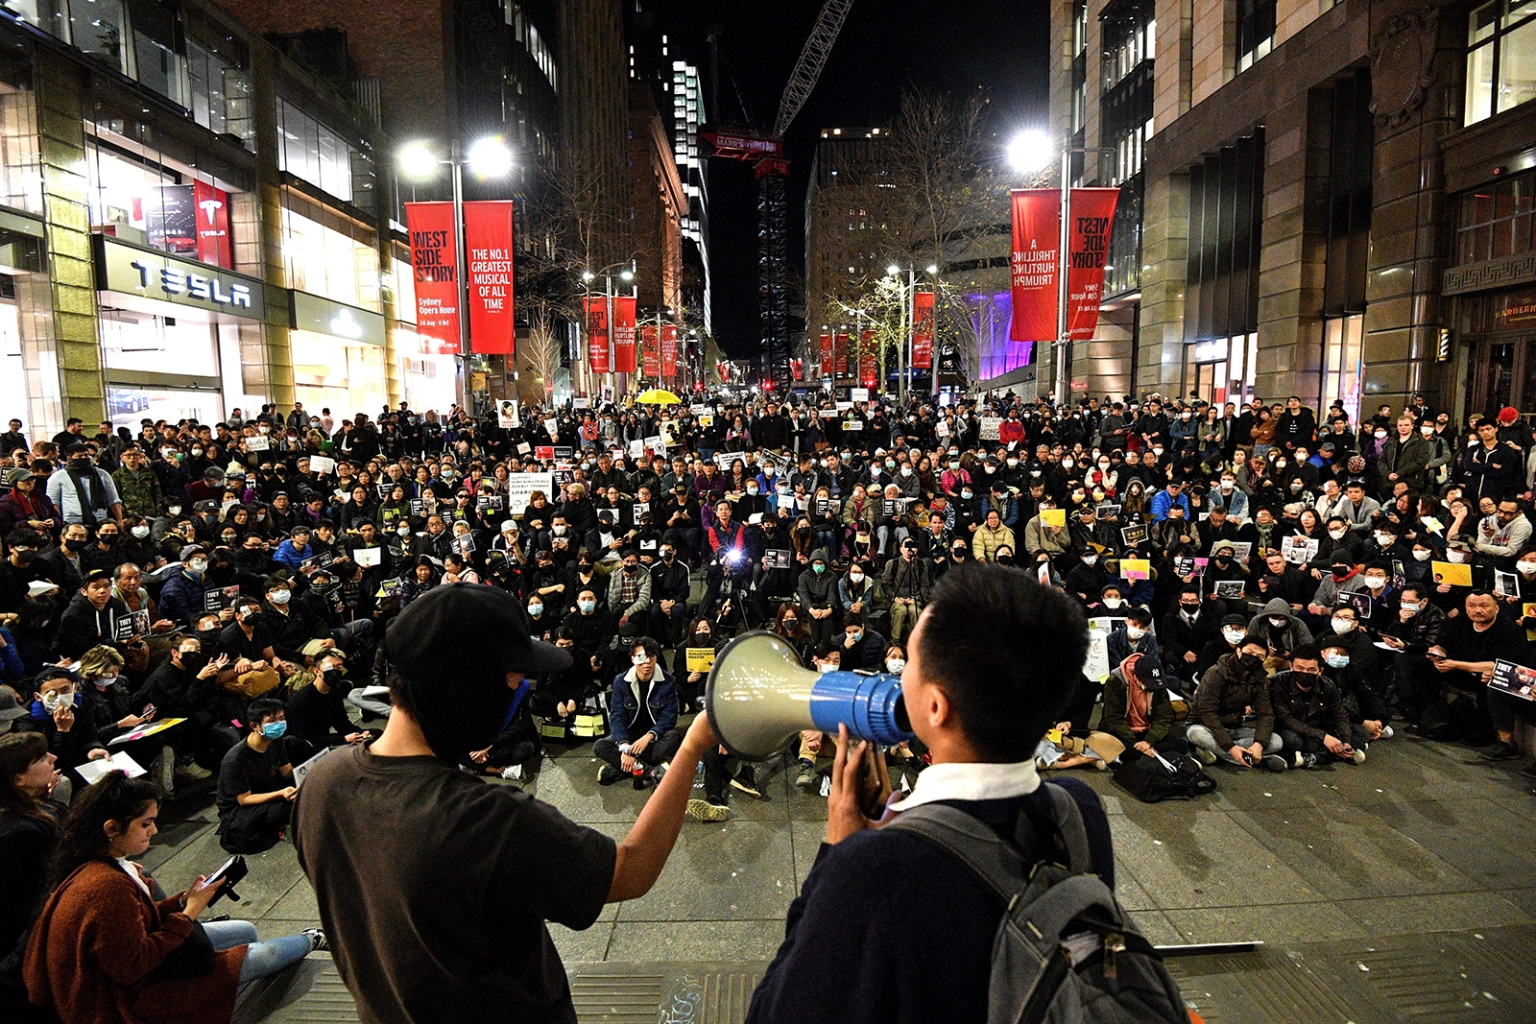 Supporters of Hong Kong pro-democracy protesters gather during a demonstration at Martin Place in Sydney, Australia, on Aug. 16. SAEED KHAN/AFP/Getty Images